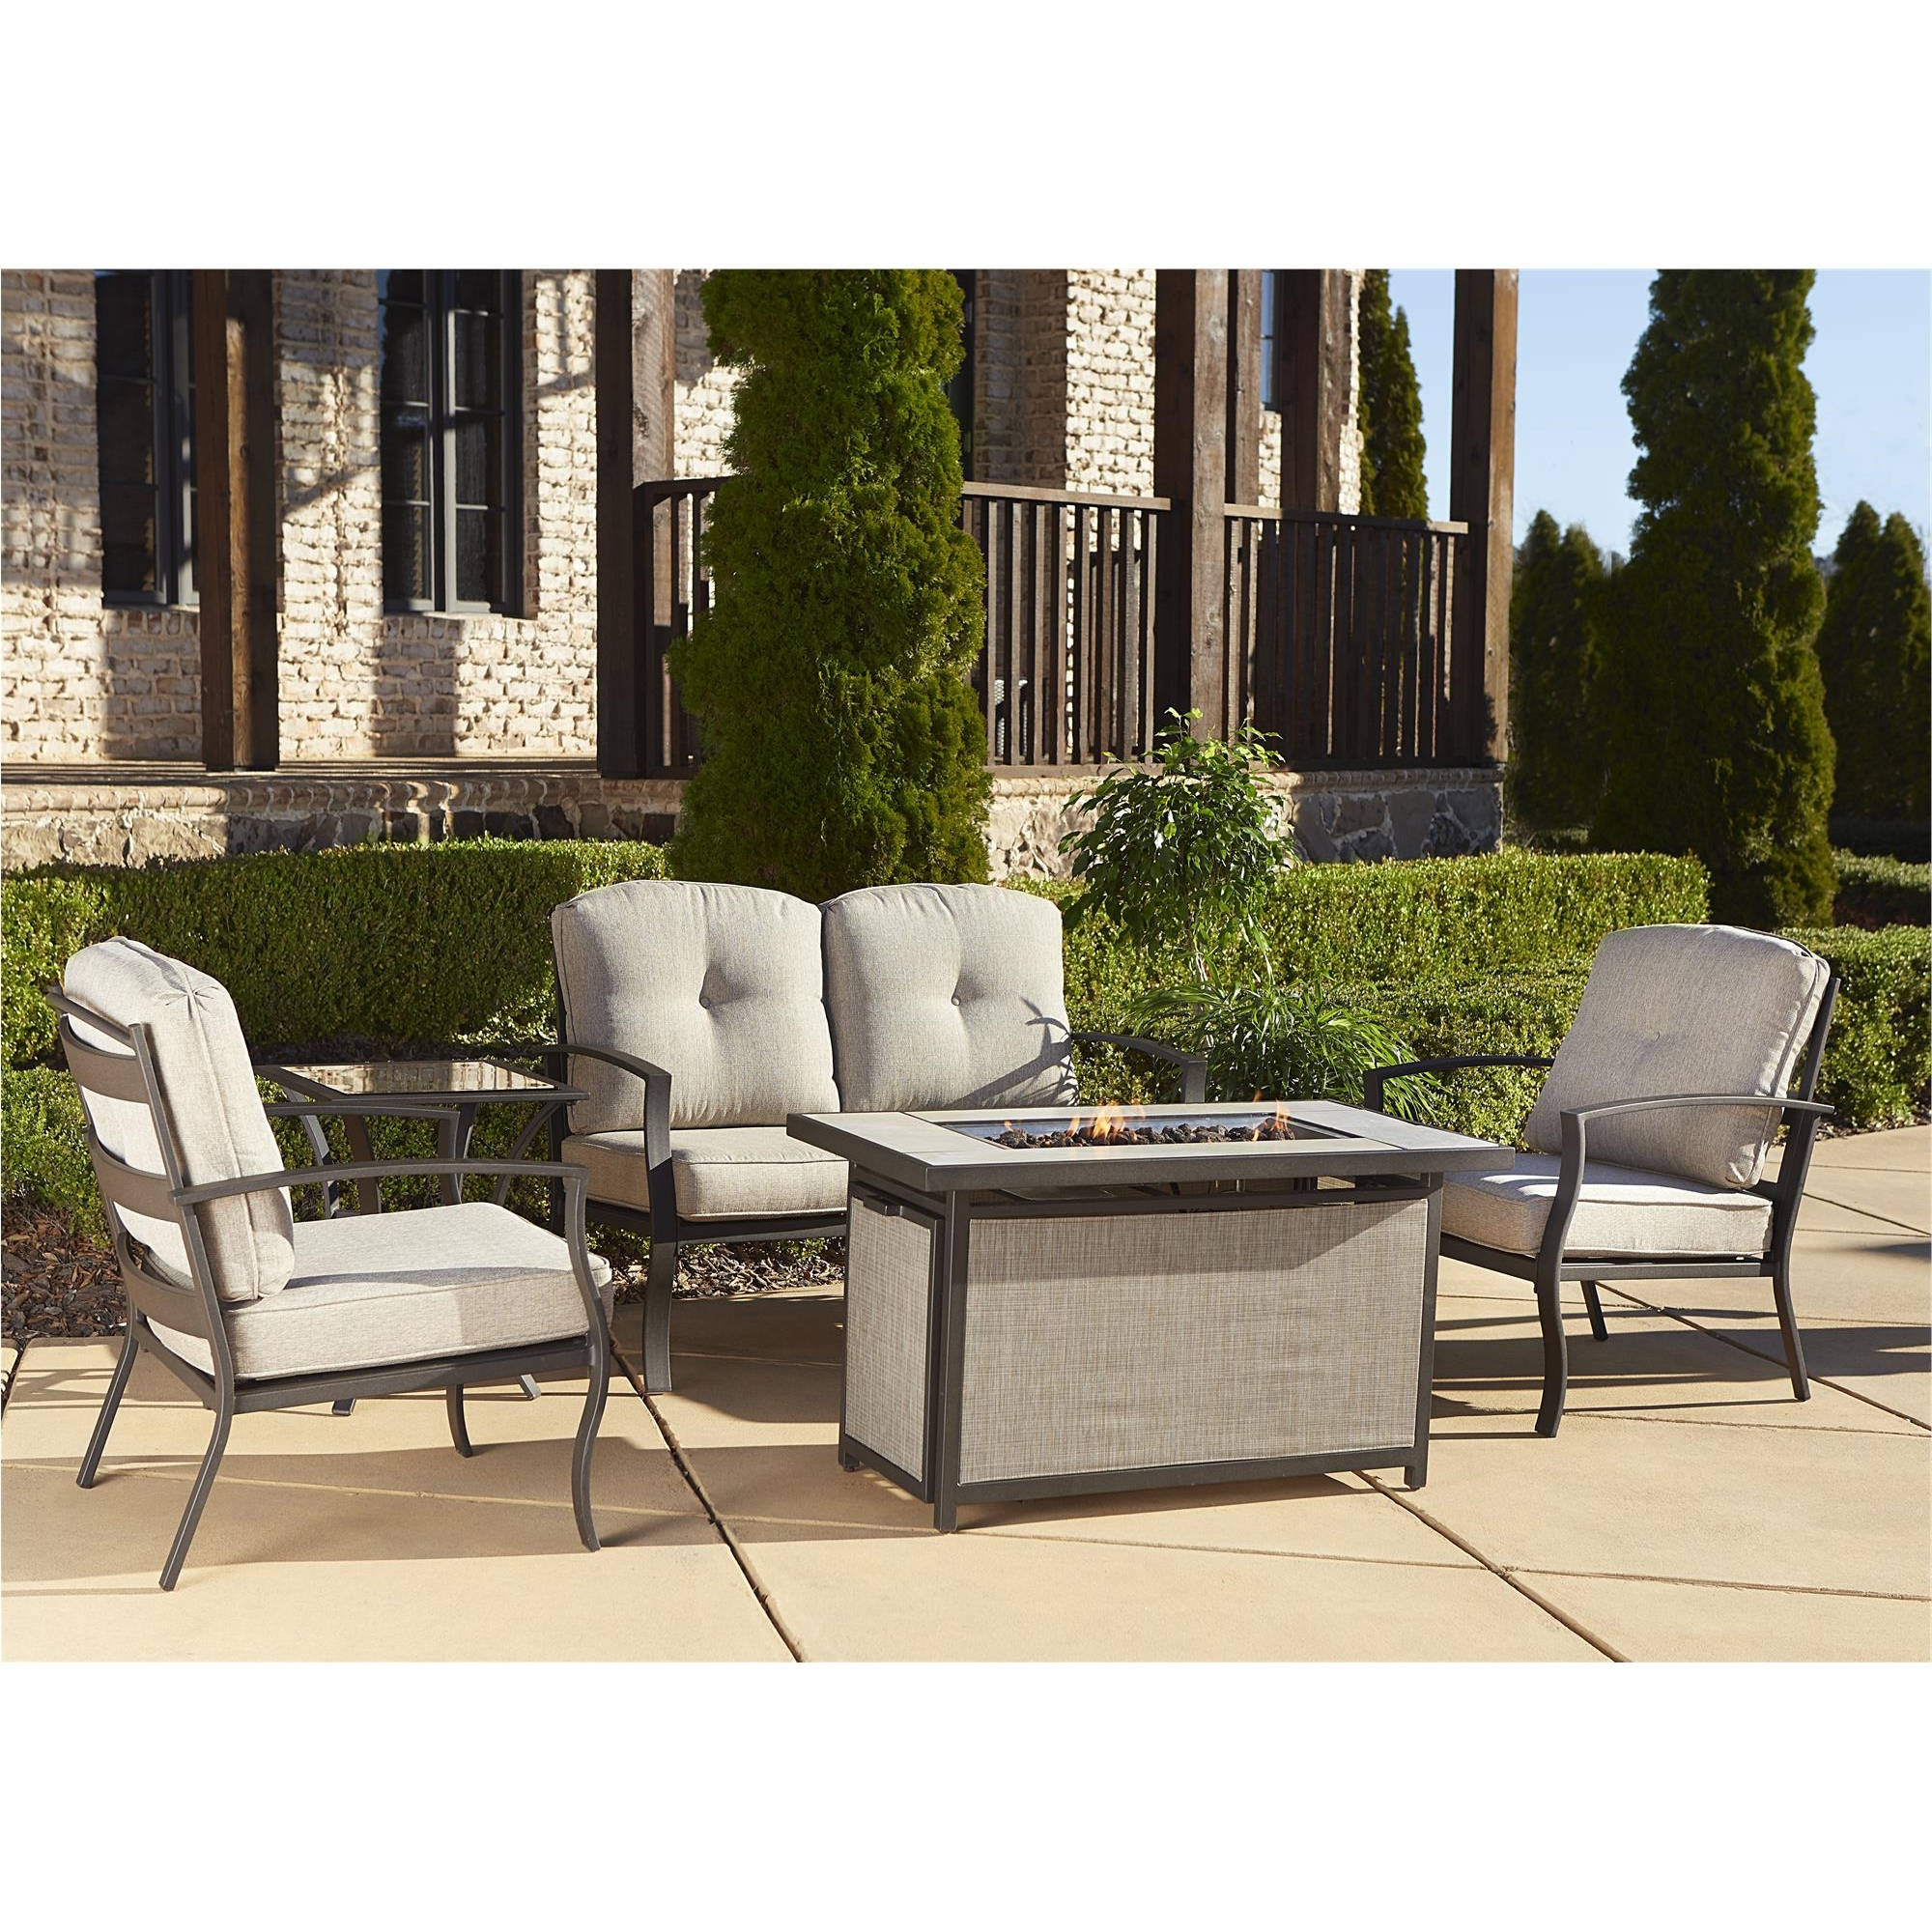 Cosco Outdoor 5 Piece Serene Ridge Aluminum Patio Furniture Intended For Famous Aluminum Patio Conversation Sets (View 5 of 15)